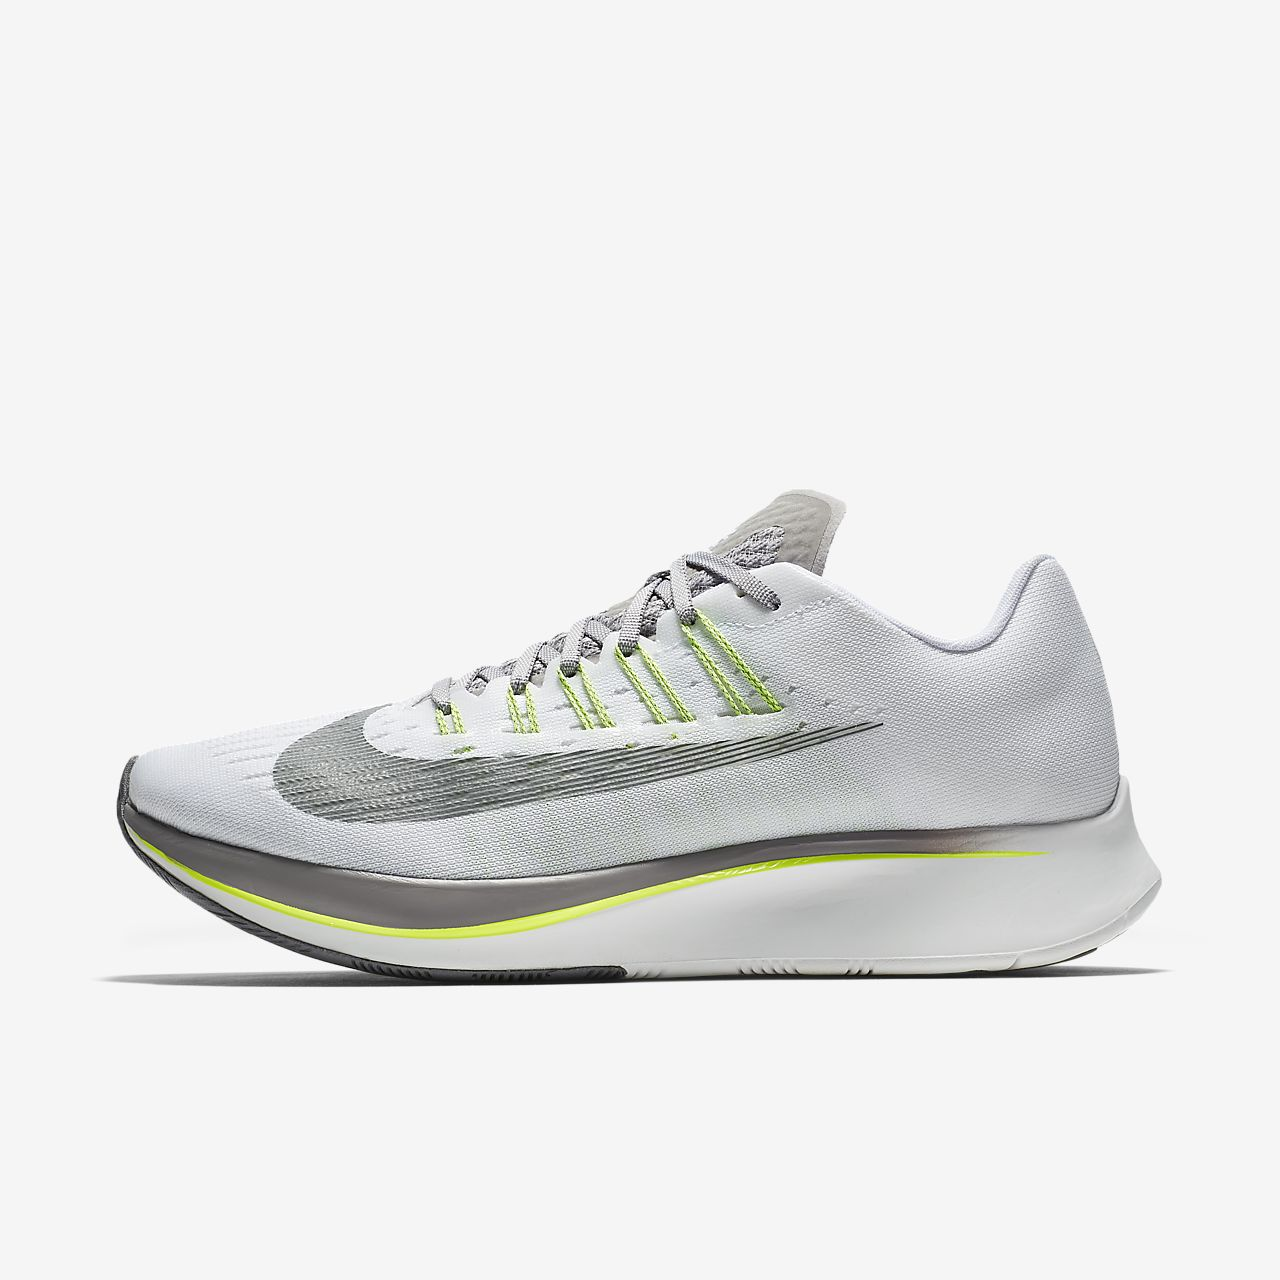 676d5694fbd6 Nike Zoom Fly Men s Running Shoe. Nike.com